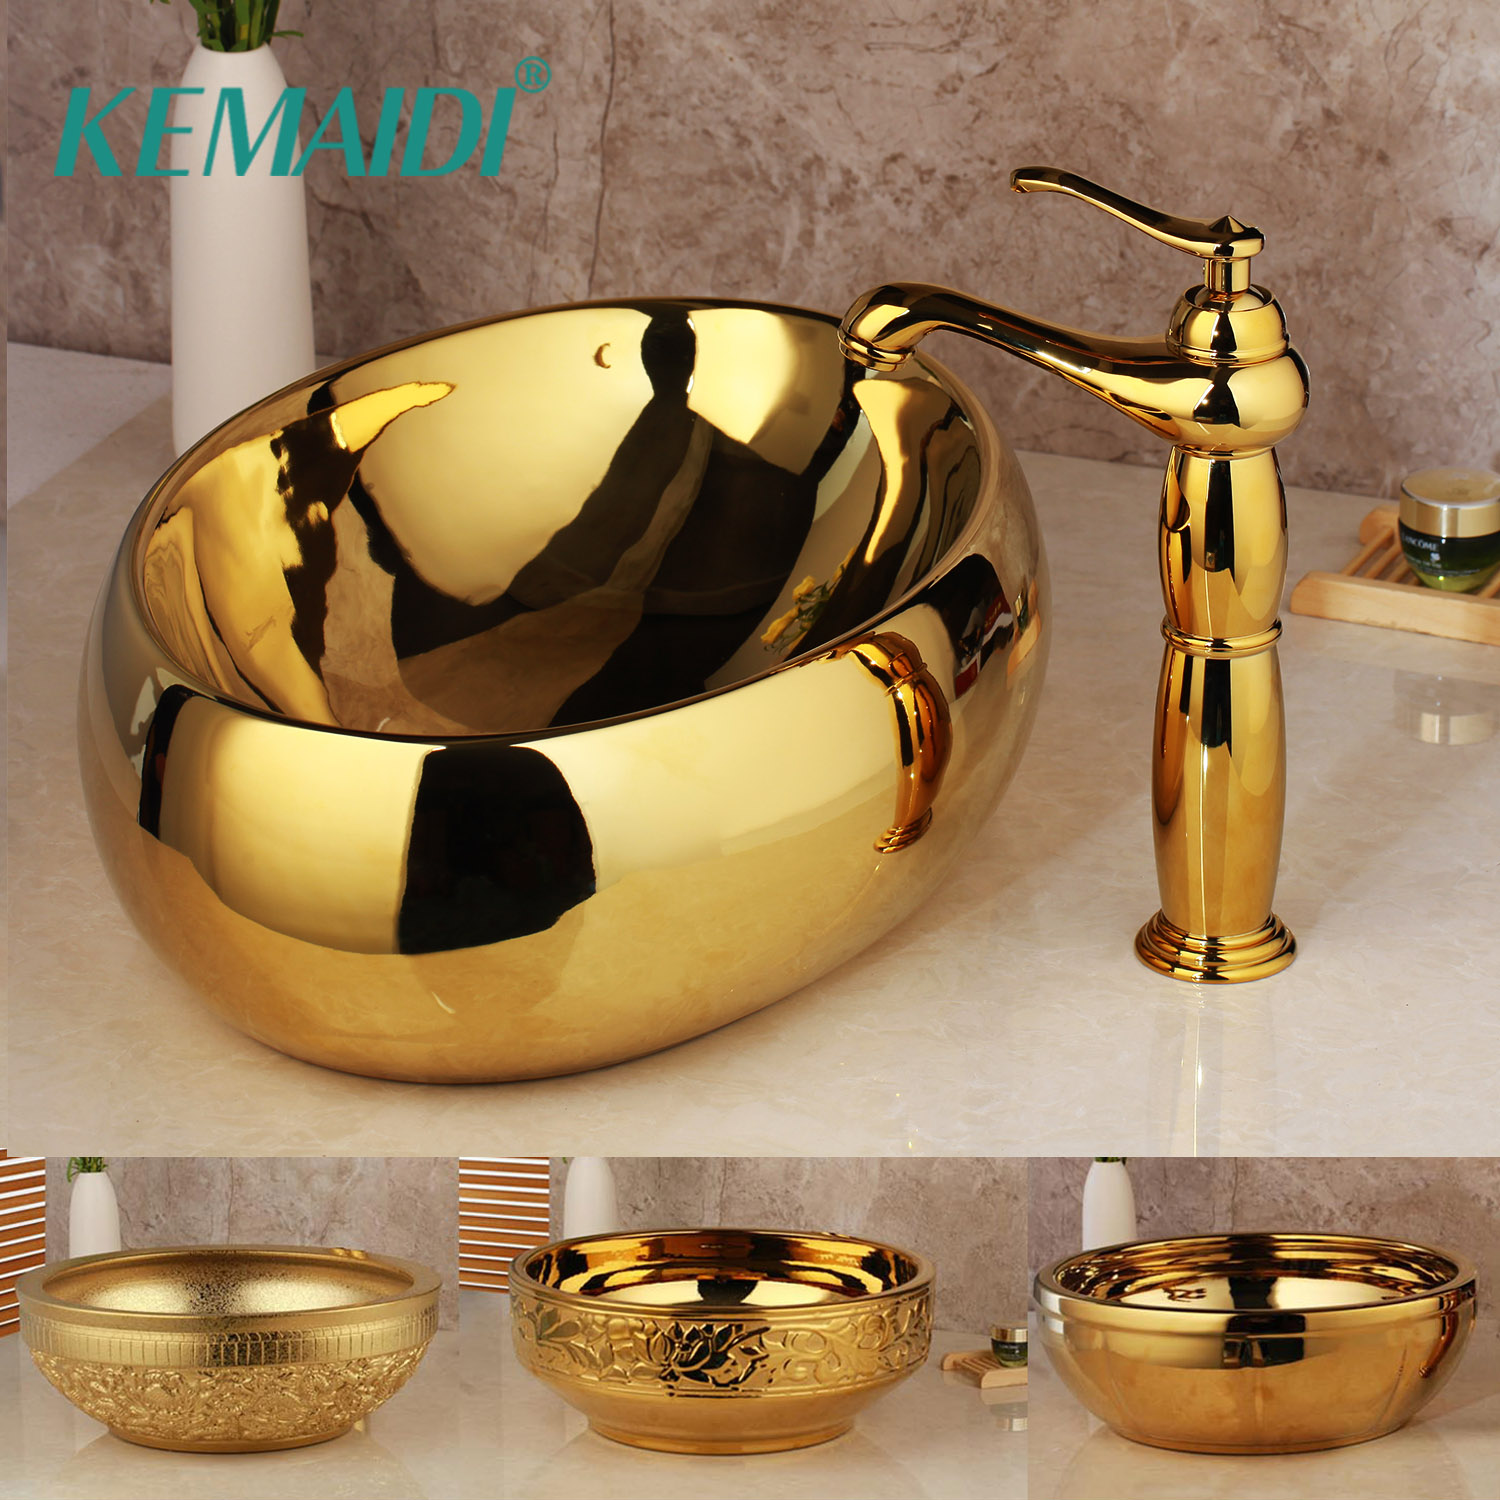 Betacryl Pure Acrylic Stone top 10 largest washbasin mixer brass ideas and get free